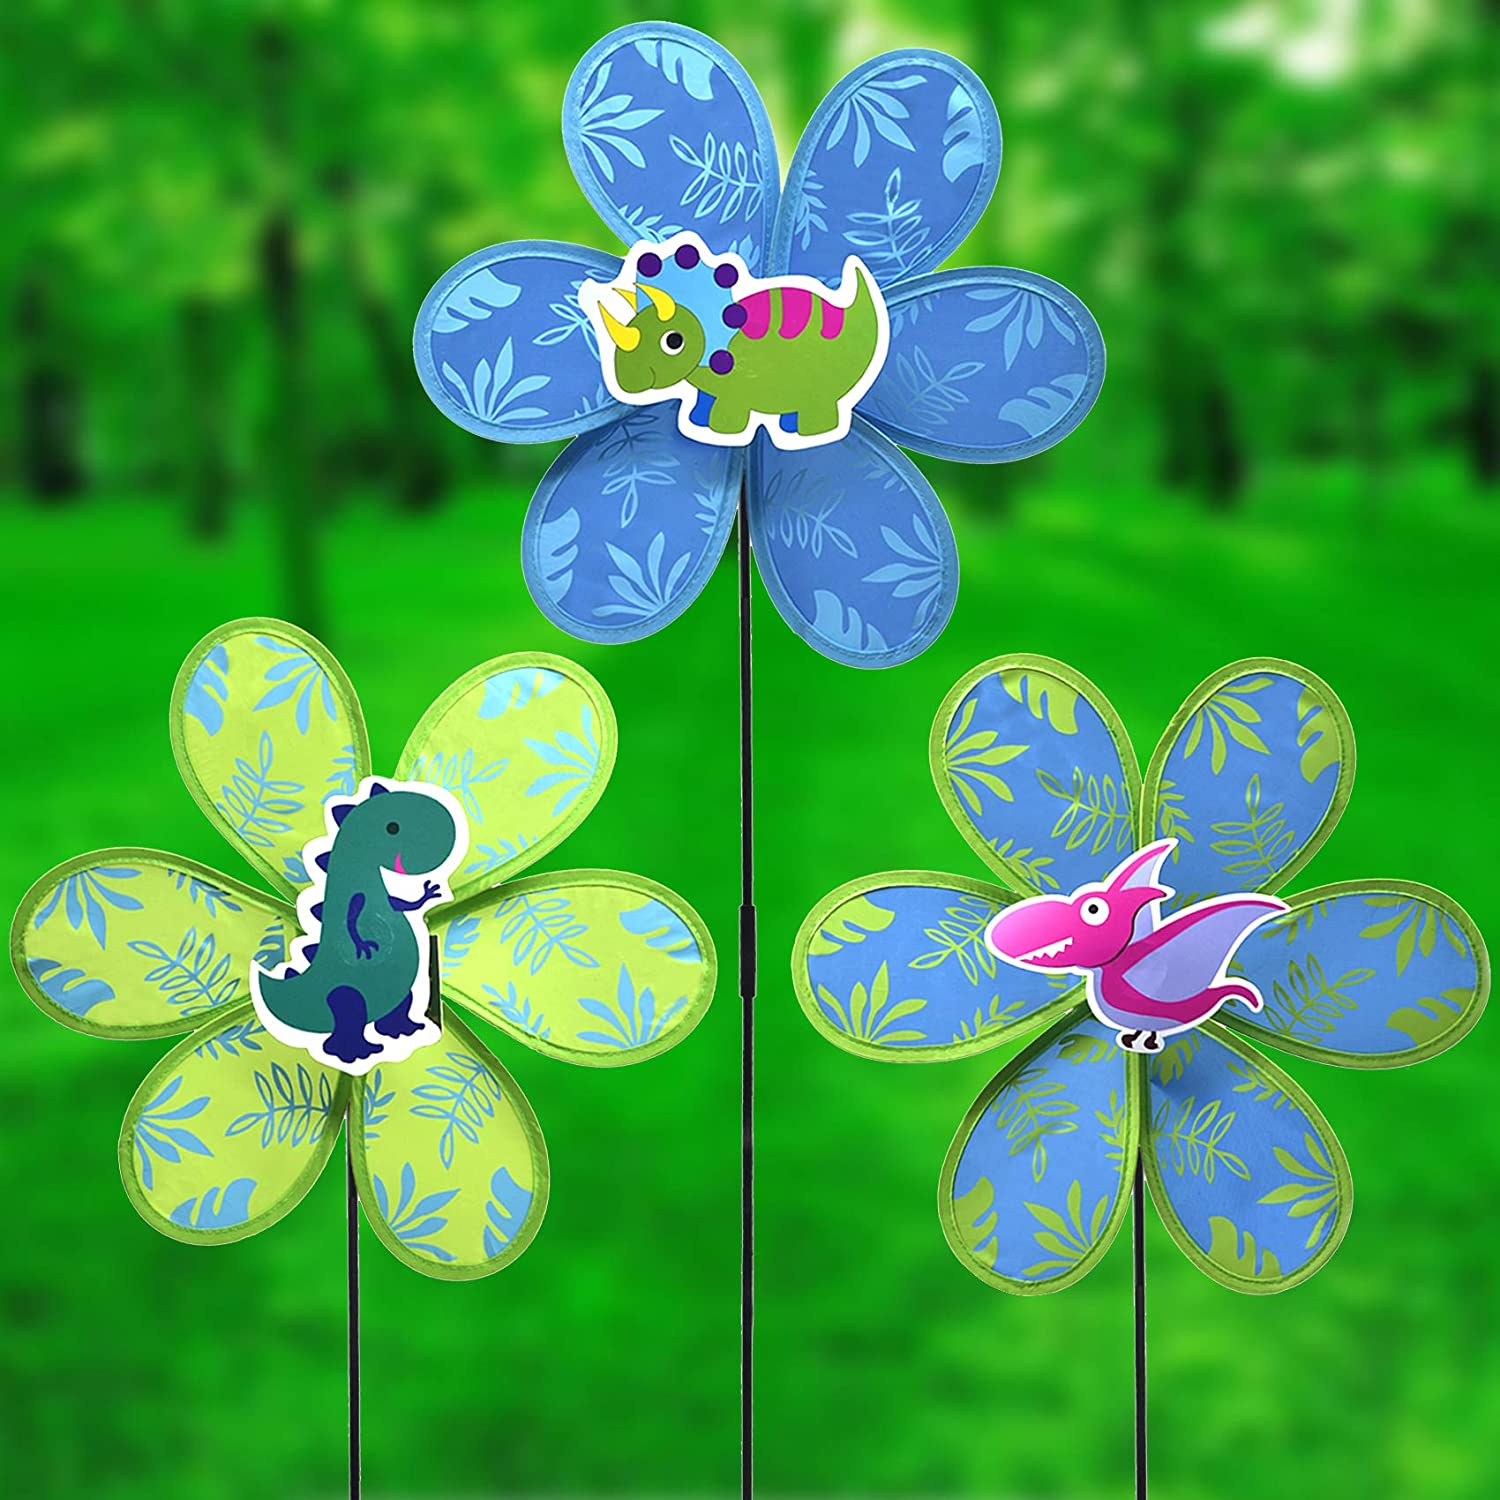 FENELY Kids Pinwheels Toys Whirligigs Wind Spinners for Garden Yard Decor Dinosaur Windmill Decorative Garden Stakes Lawn OutdoorDecorations Whimsical Baby Gifts(Set of 3)